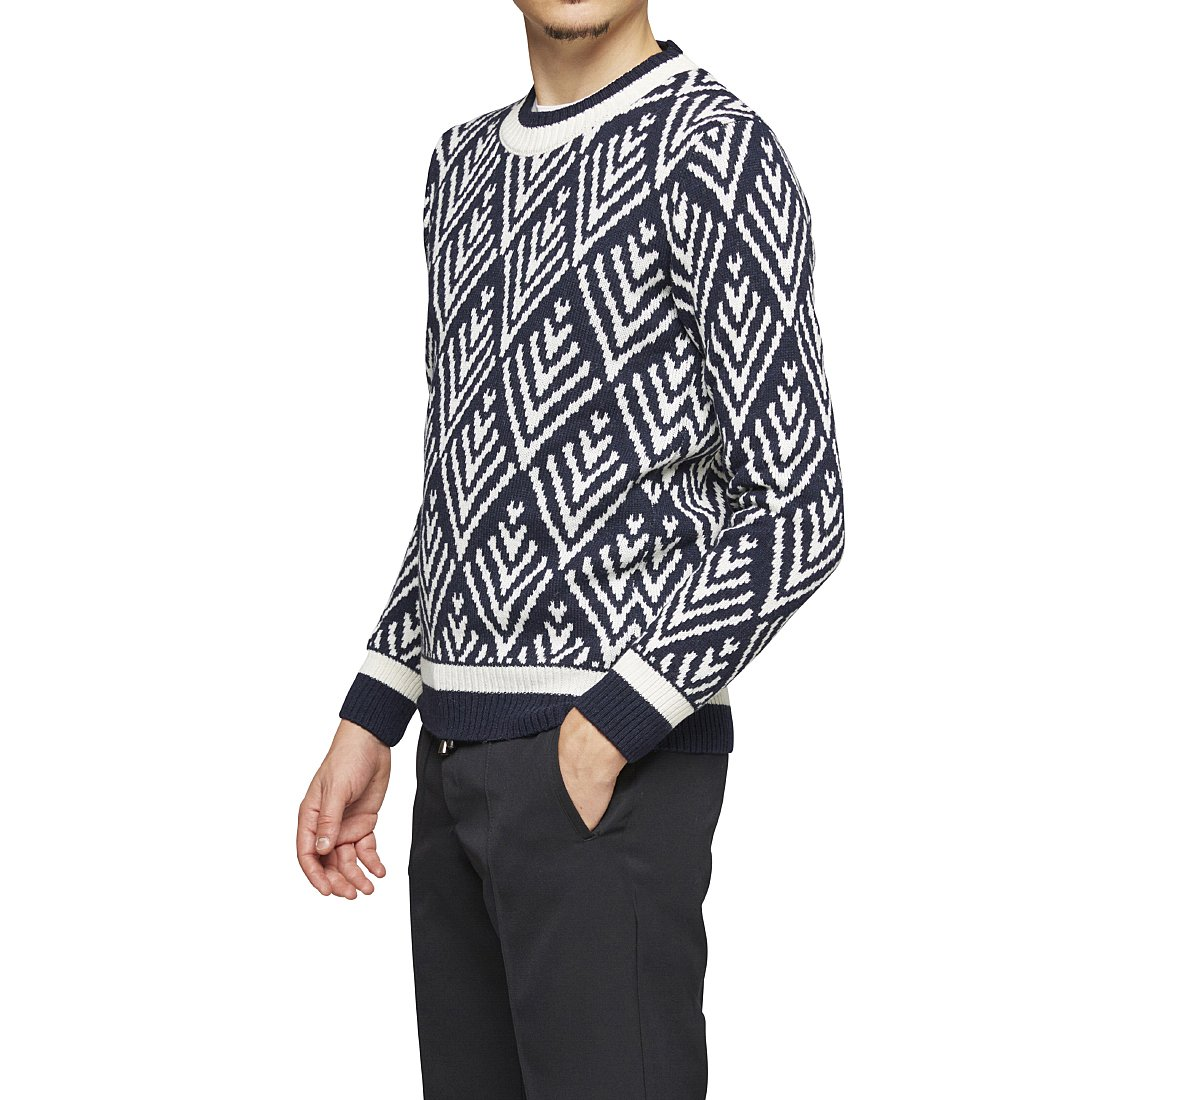 Ethnic style fabric pullover